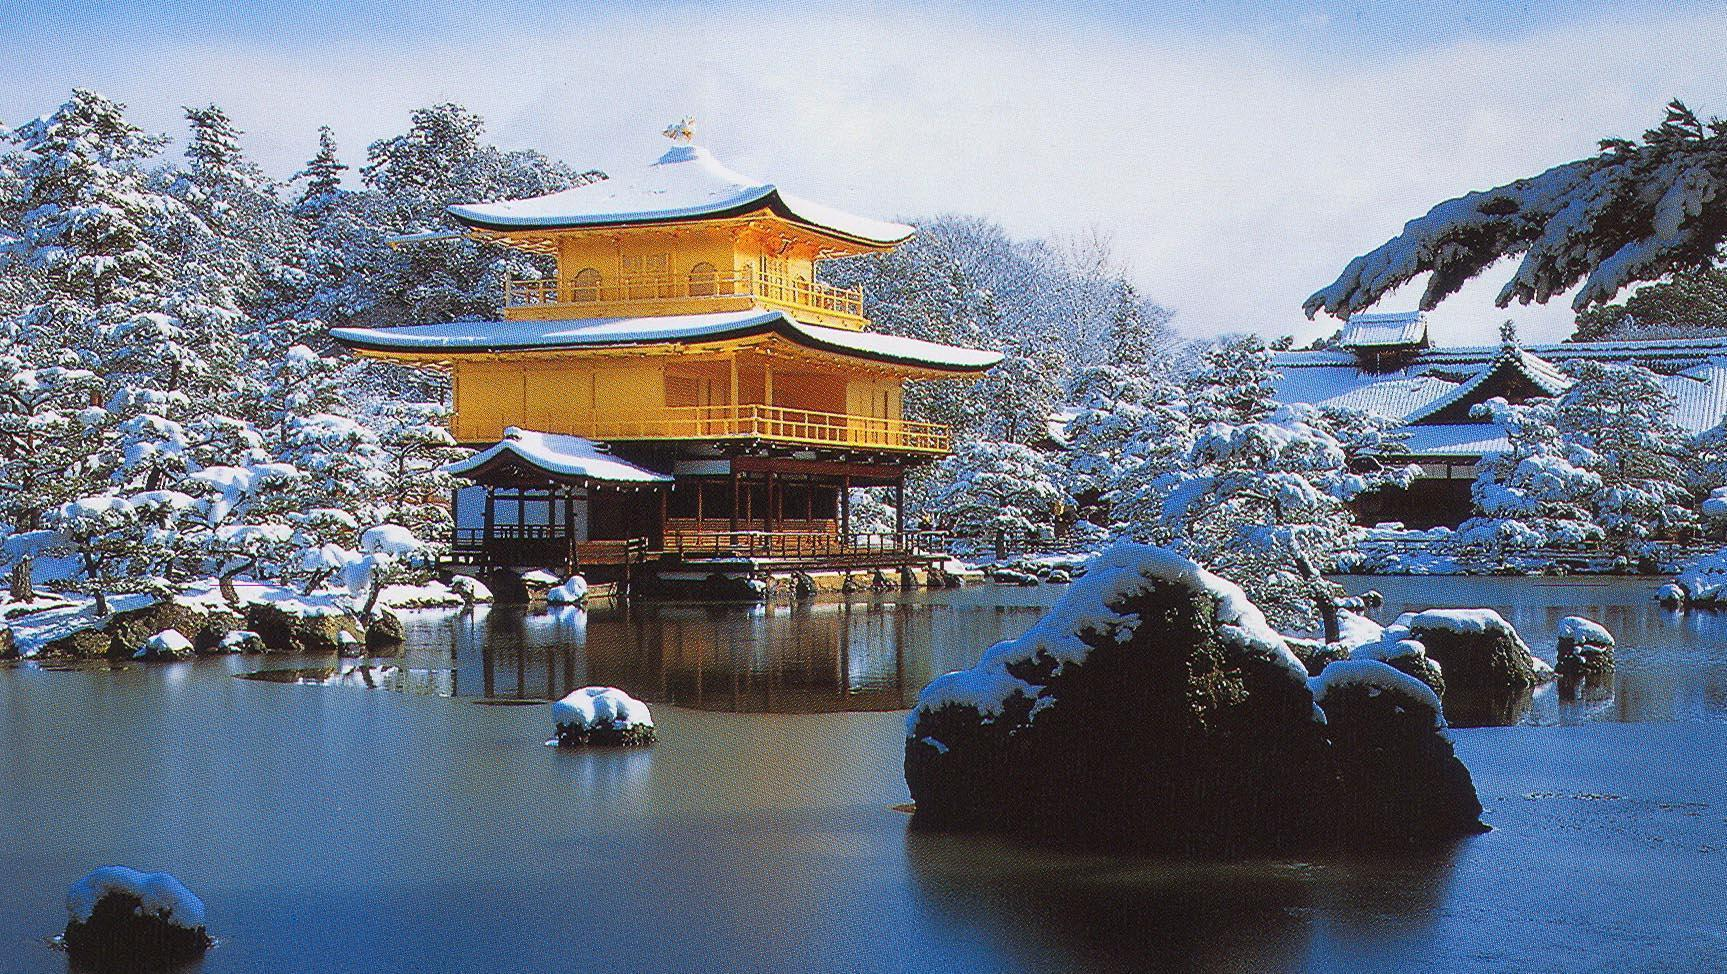 kinkaku-ji-temple-kyoto-japan-hd-1